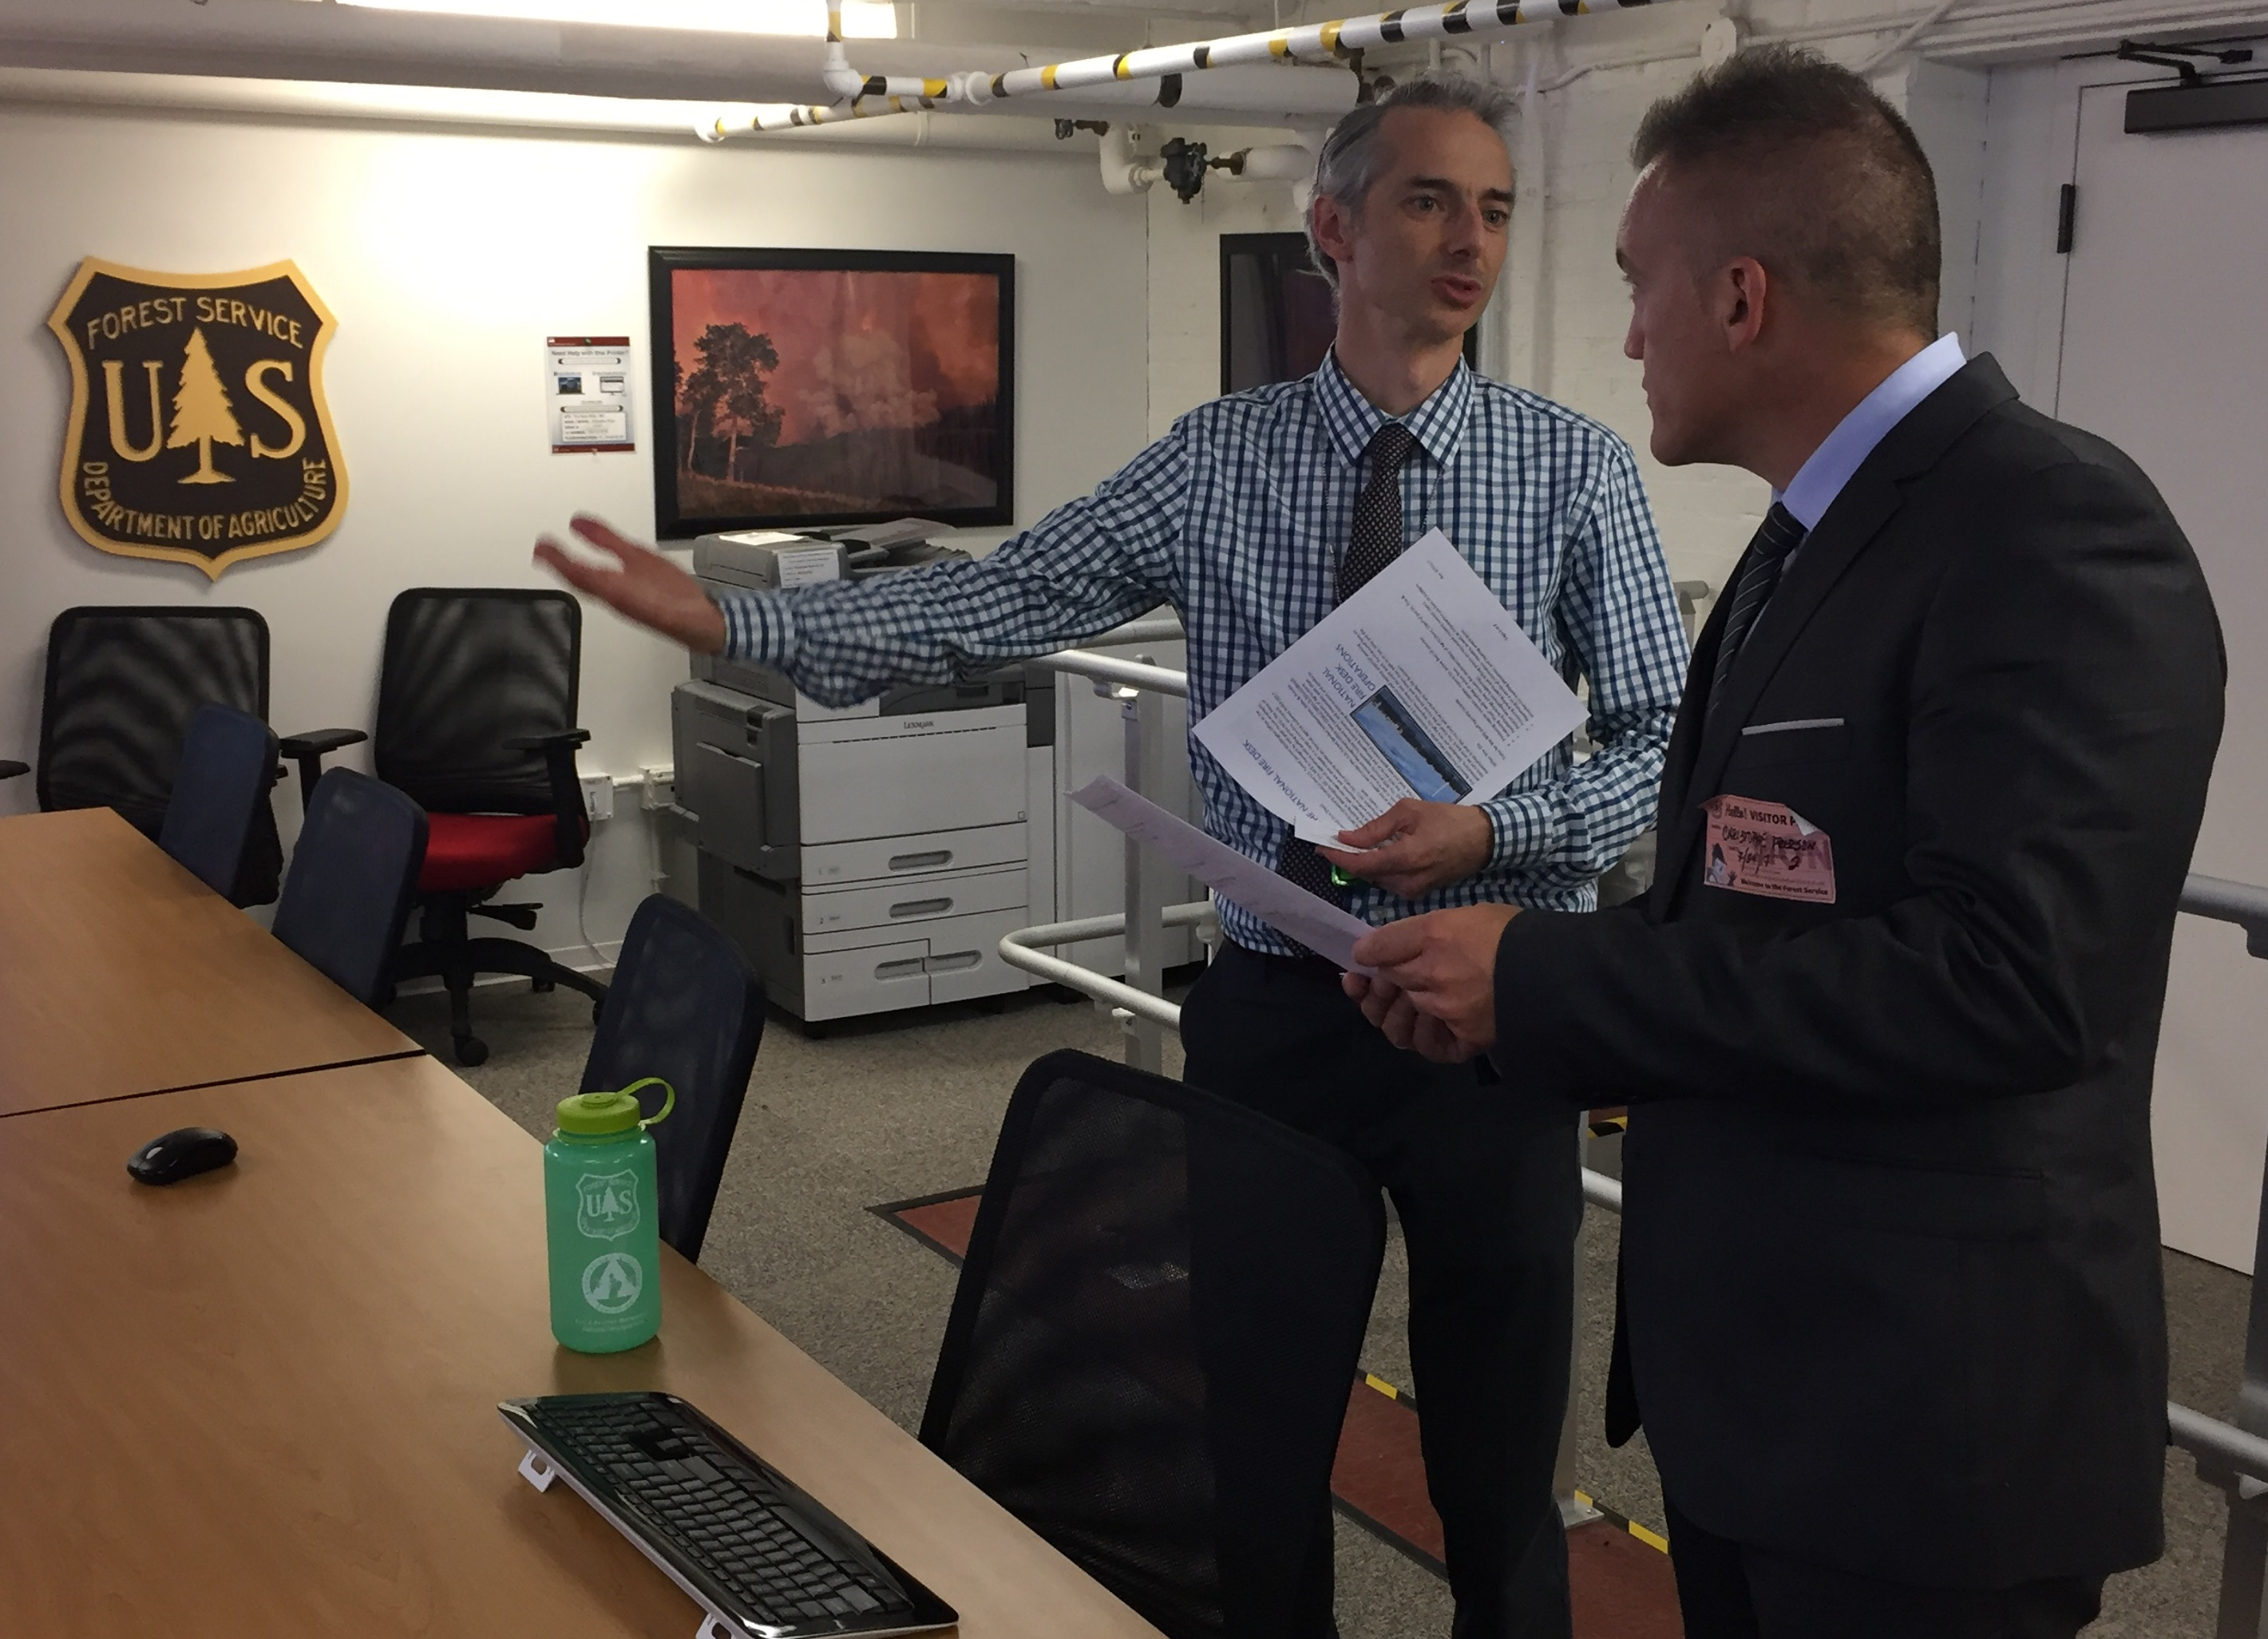 Two individuals having a discussion related to incident management.  Both have papers in hand.